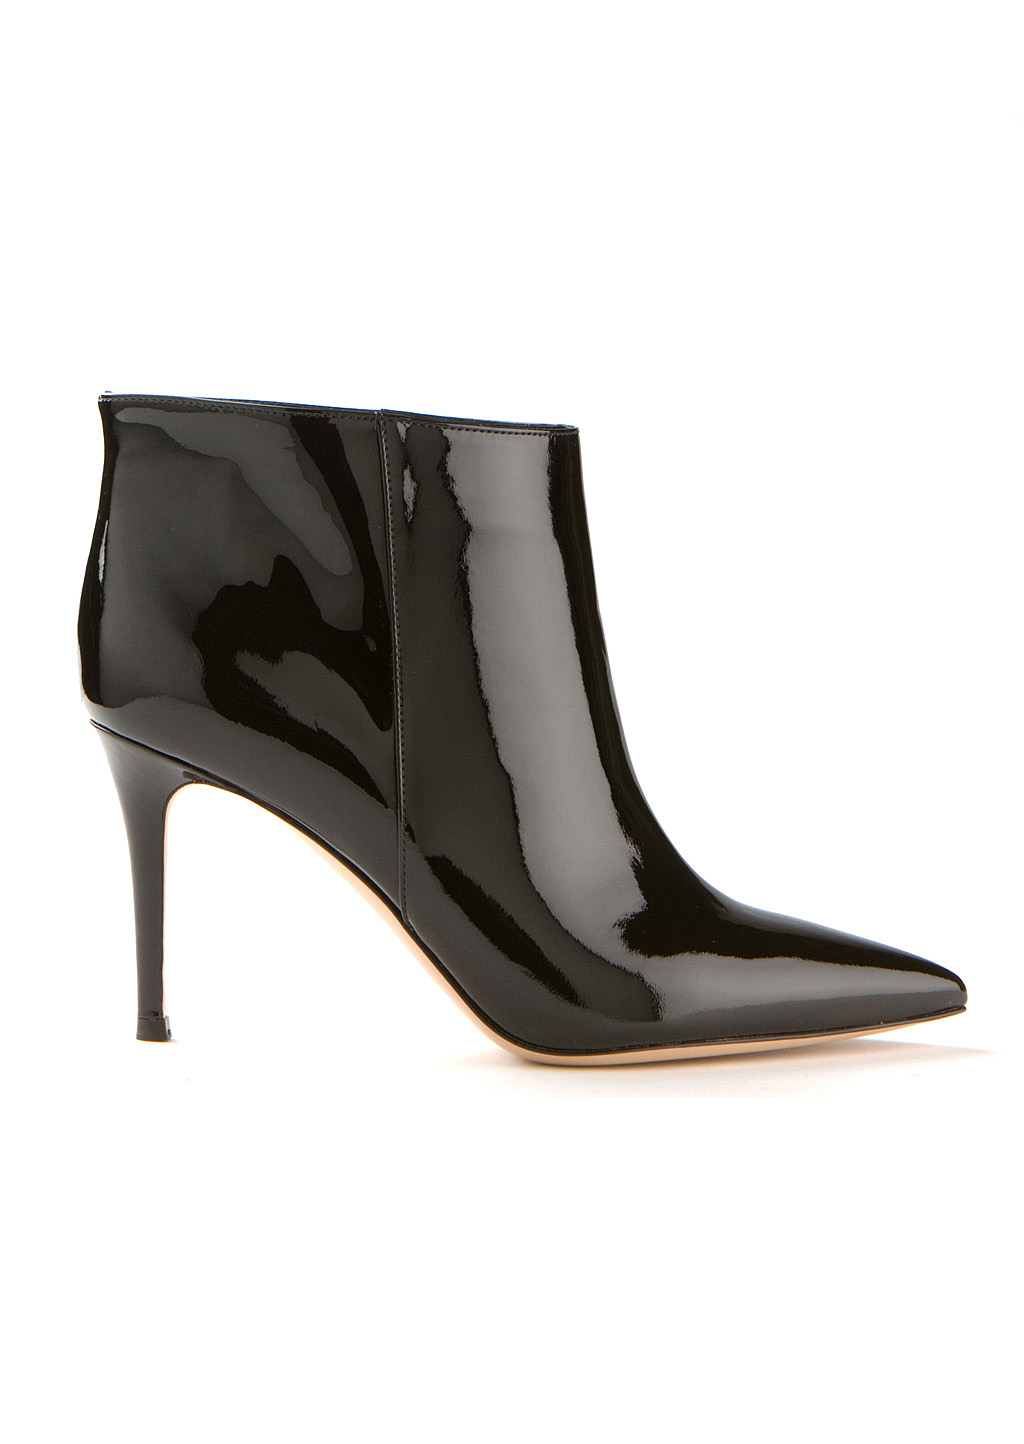 gianvito black patent leather ankle boots in black